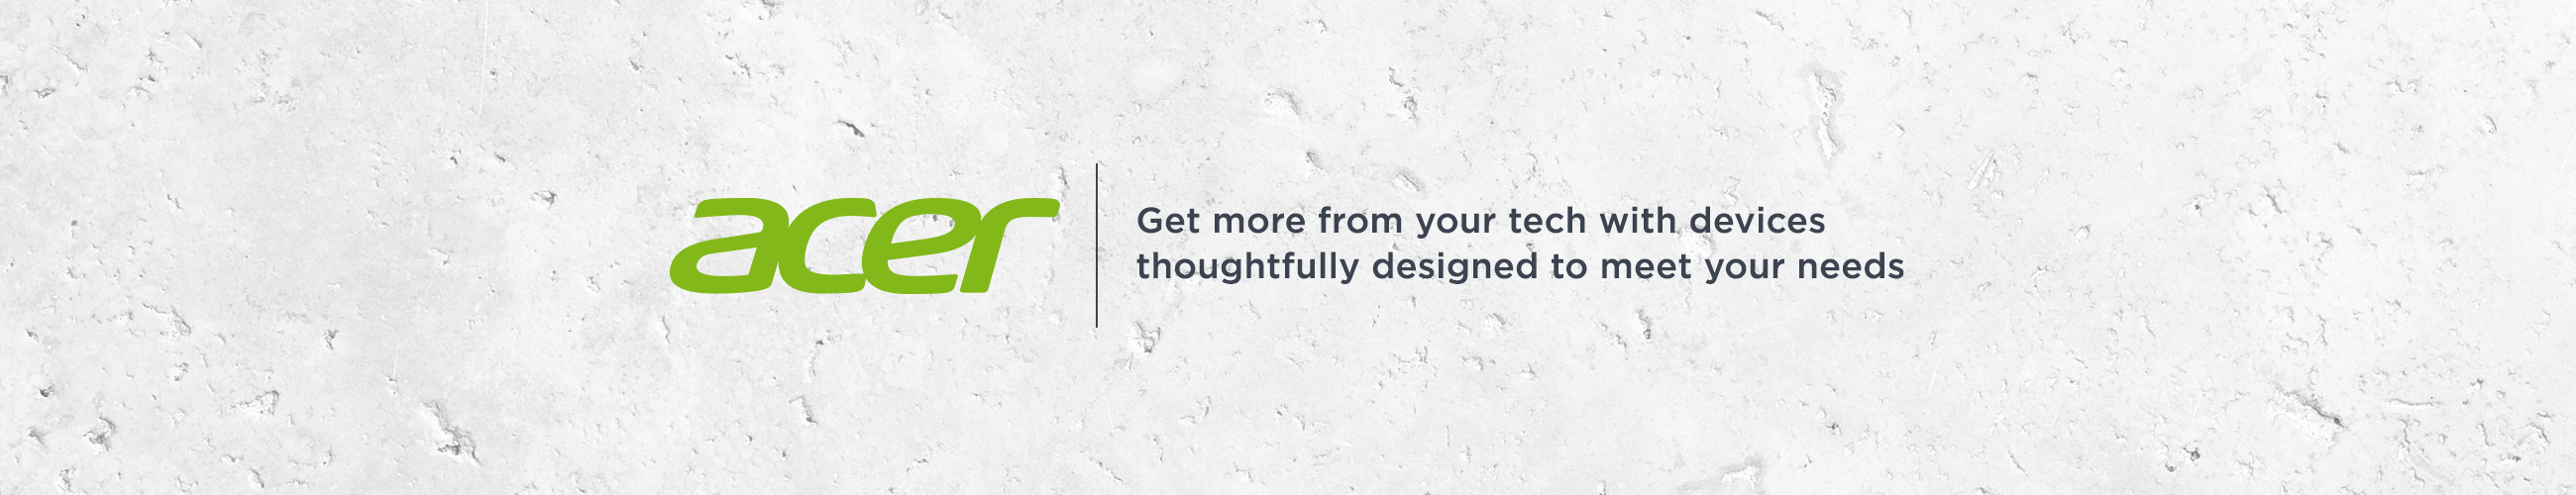 Acer, Get more from your tech with devices thoughtfully designed to meet your needs